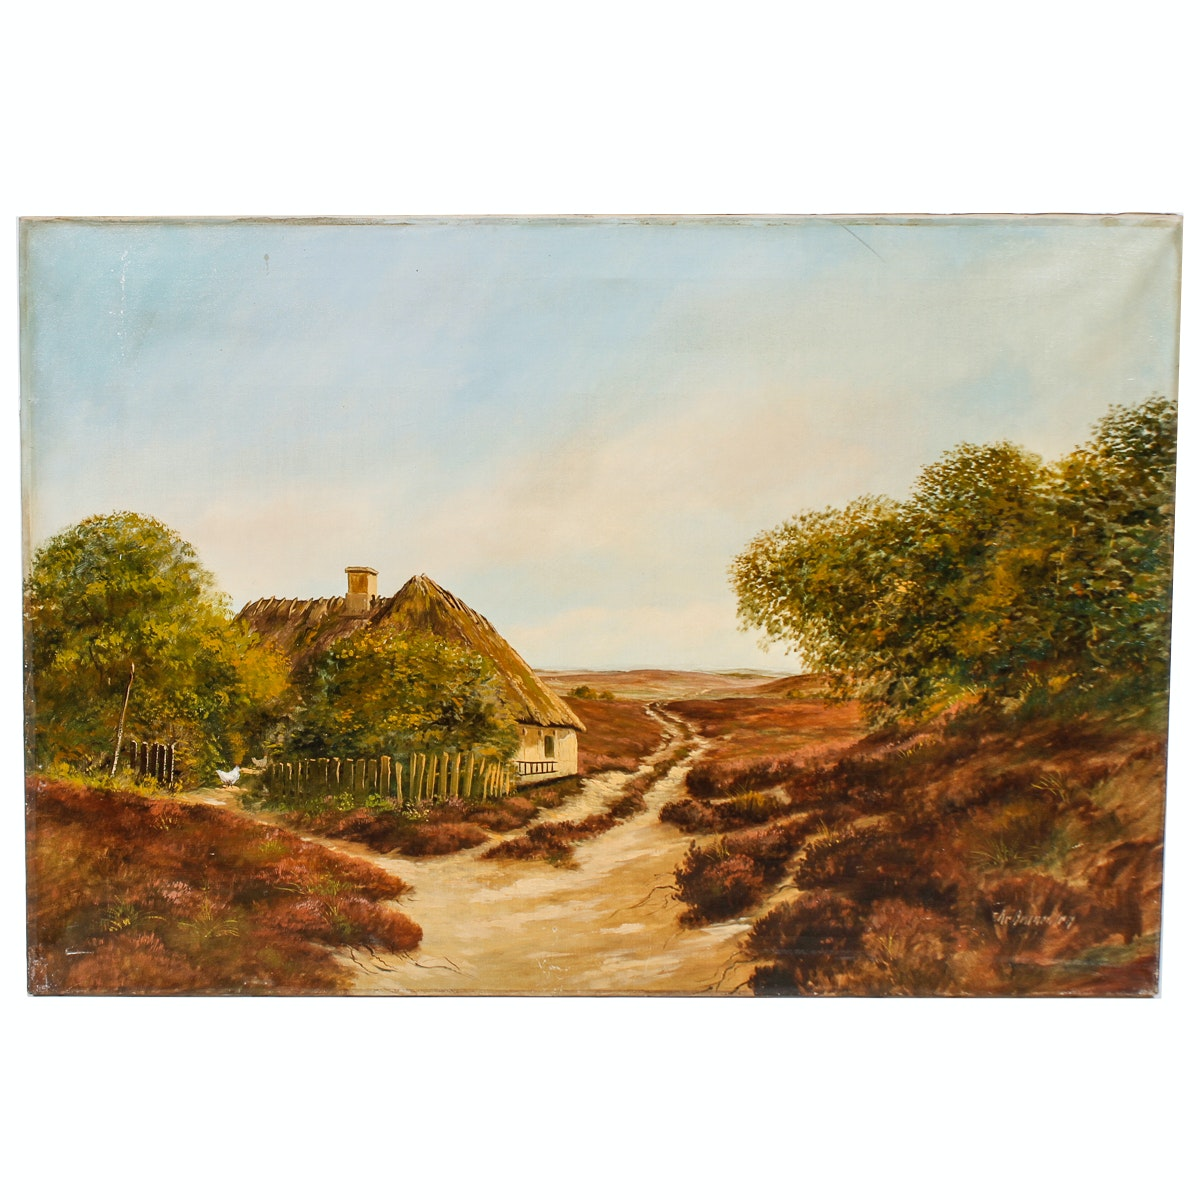 Oil Painting of a Rural Landscape